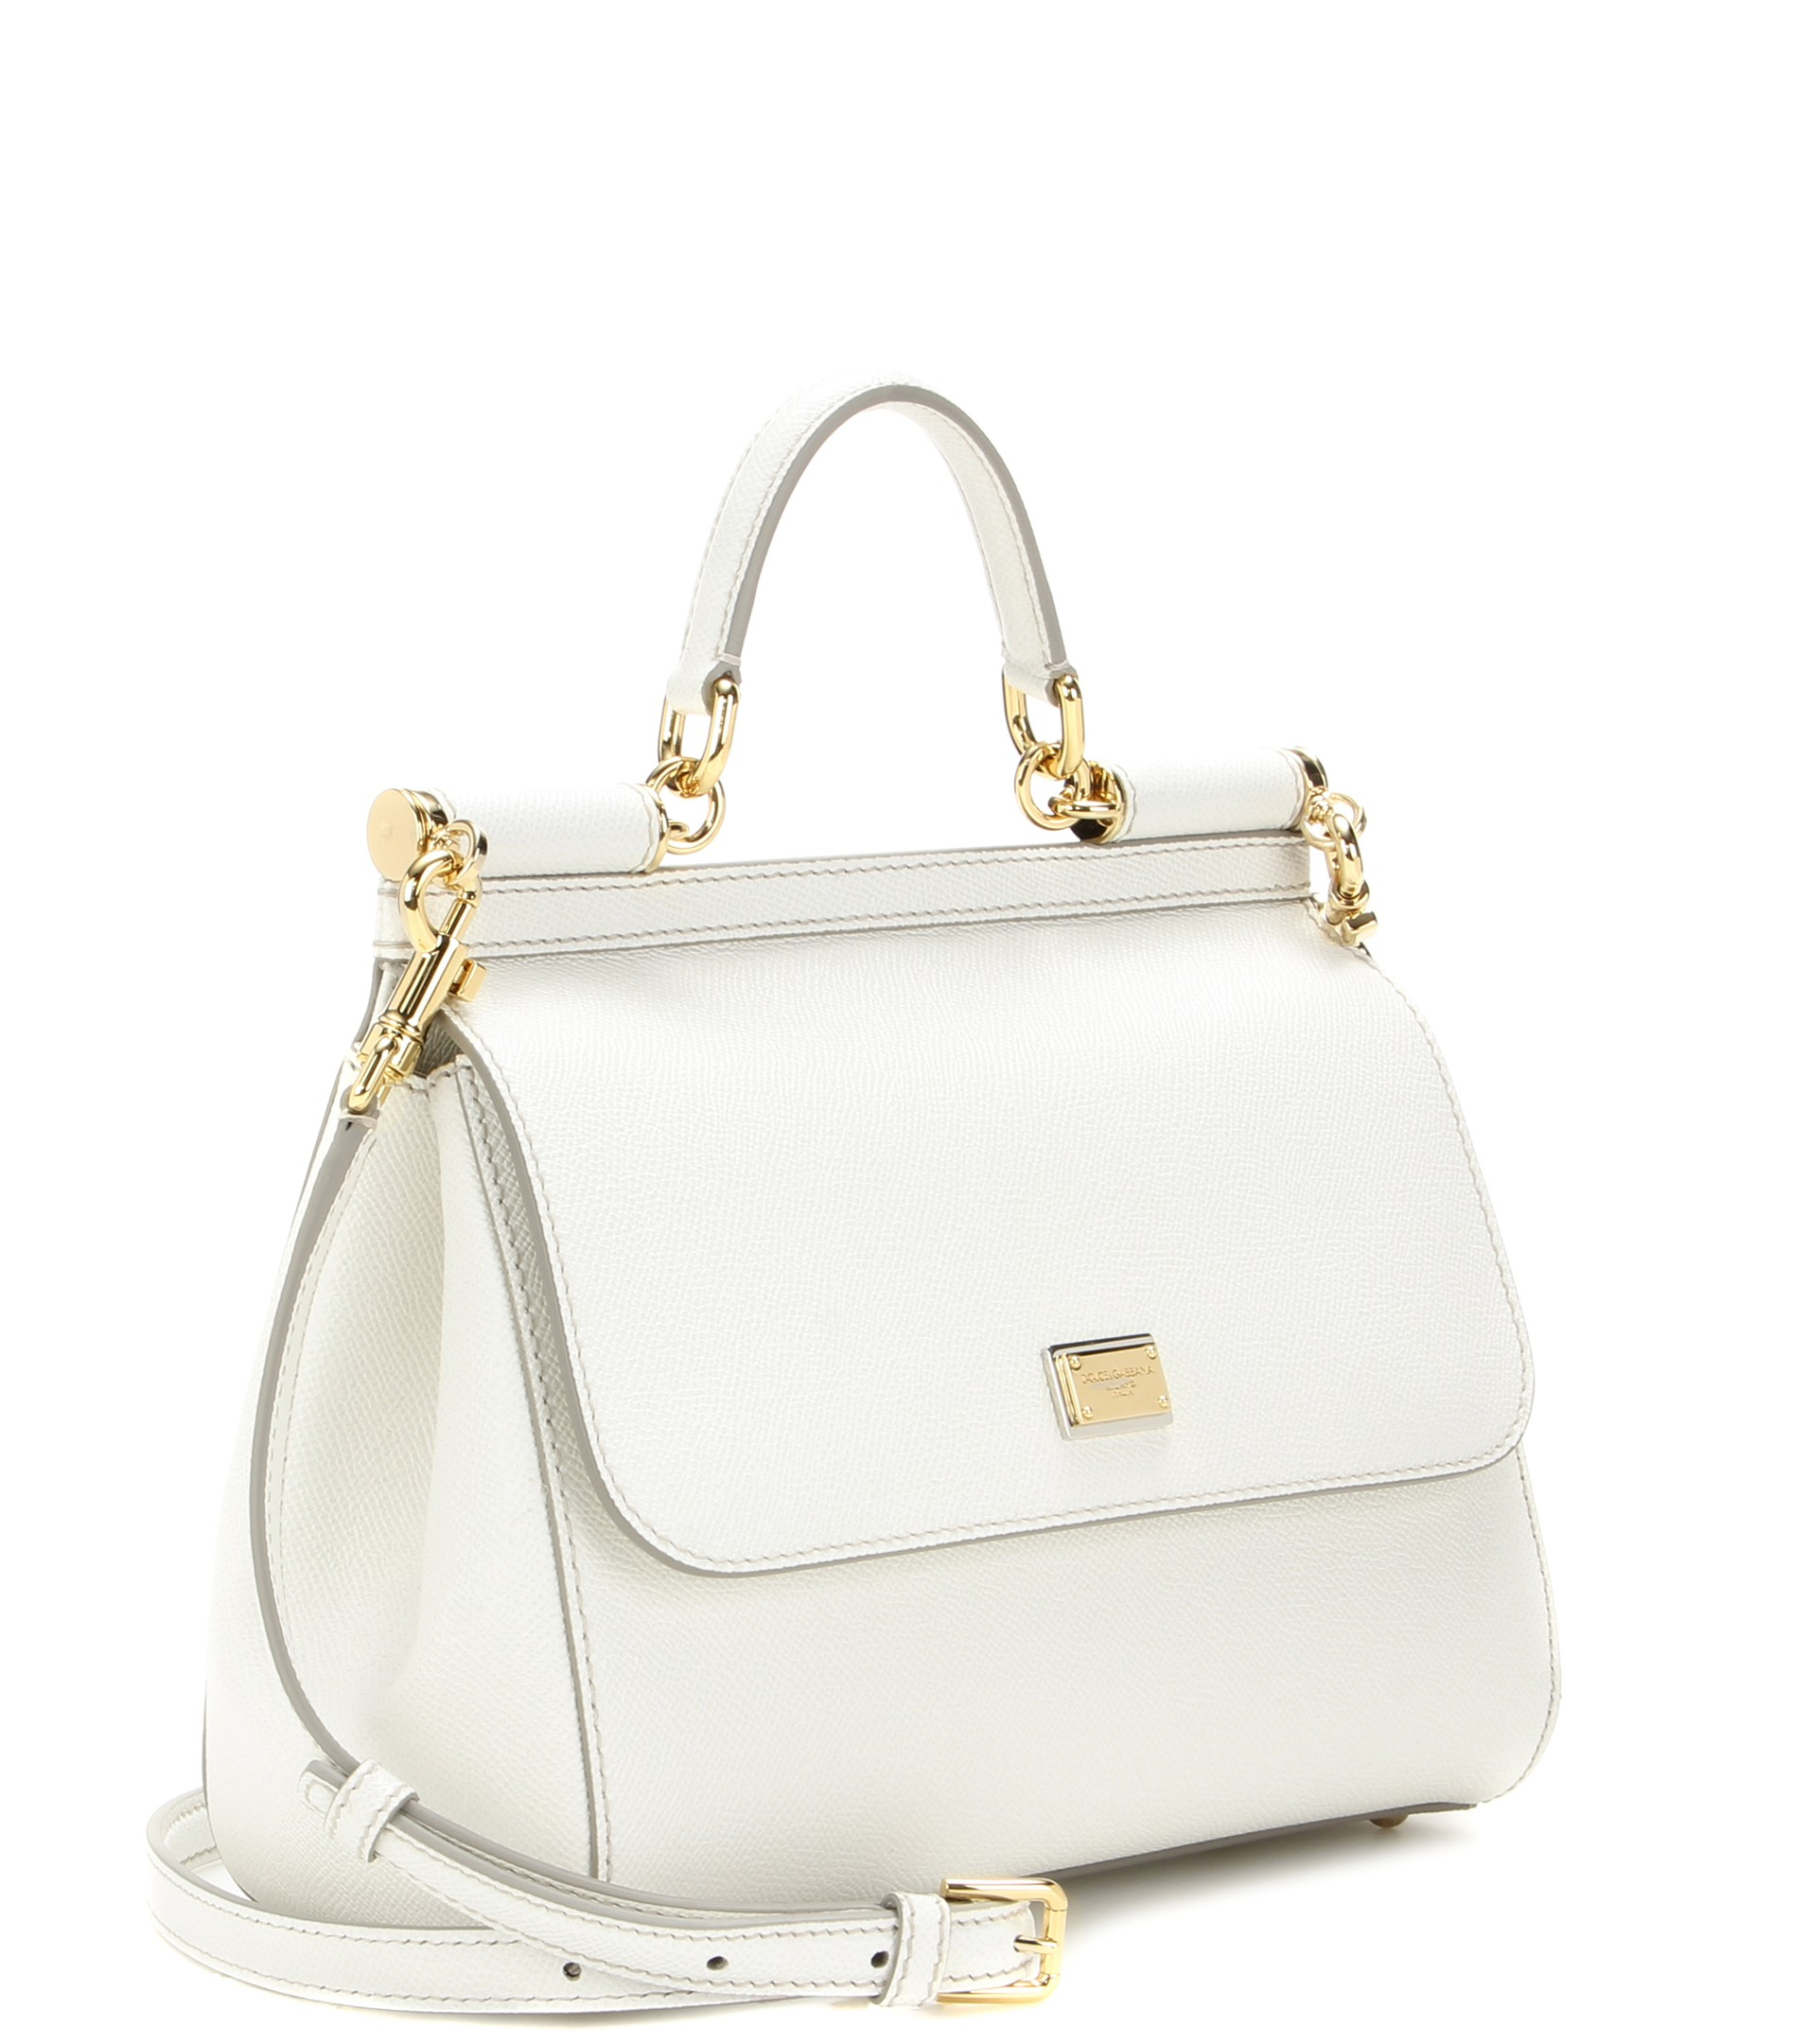 Lyst - Dolce   Gabbana Miss Sicily Medium Leather Shoulder Bag in White 92d53b22b67c5